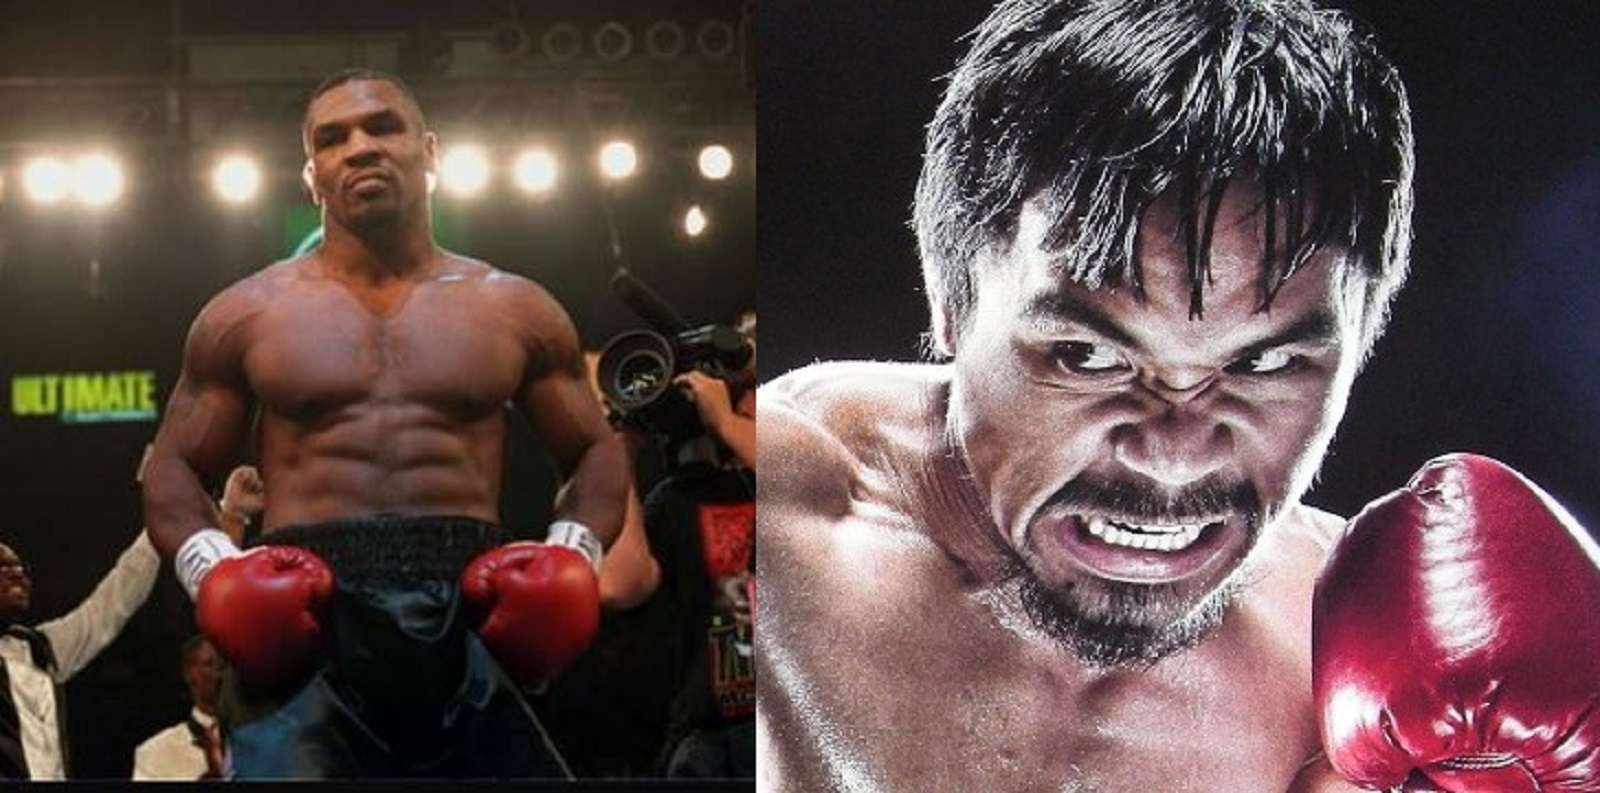 Unexpected Mike Tyson and Manny Pacquiao Link Up